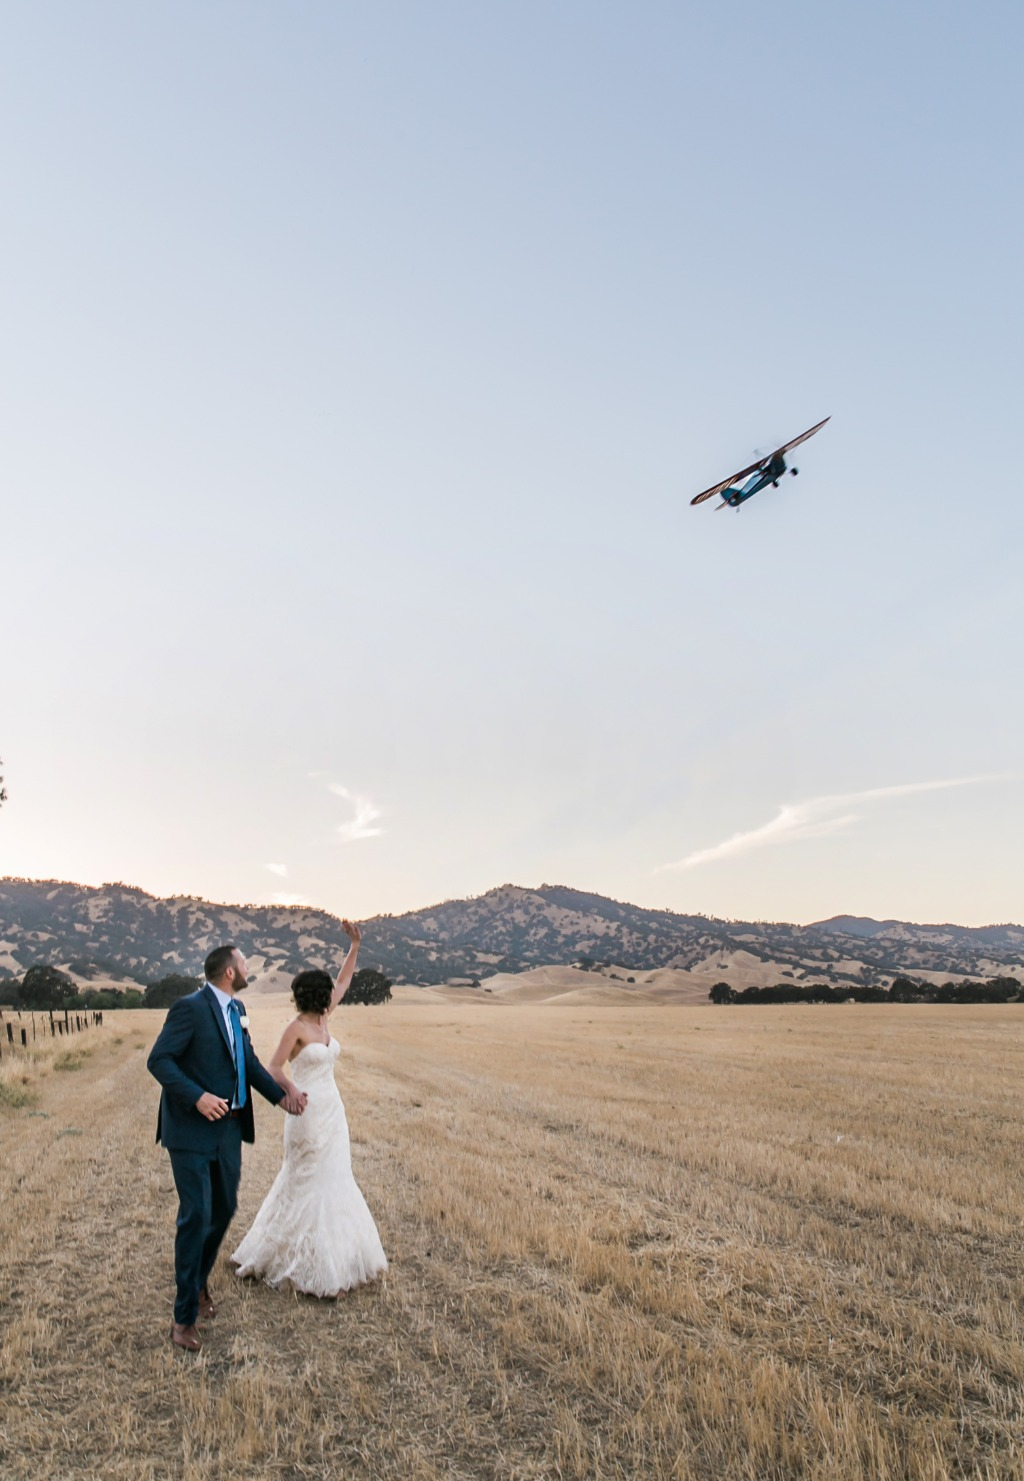 Inspiration Image from Ryan Greenleaf Photography